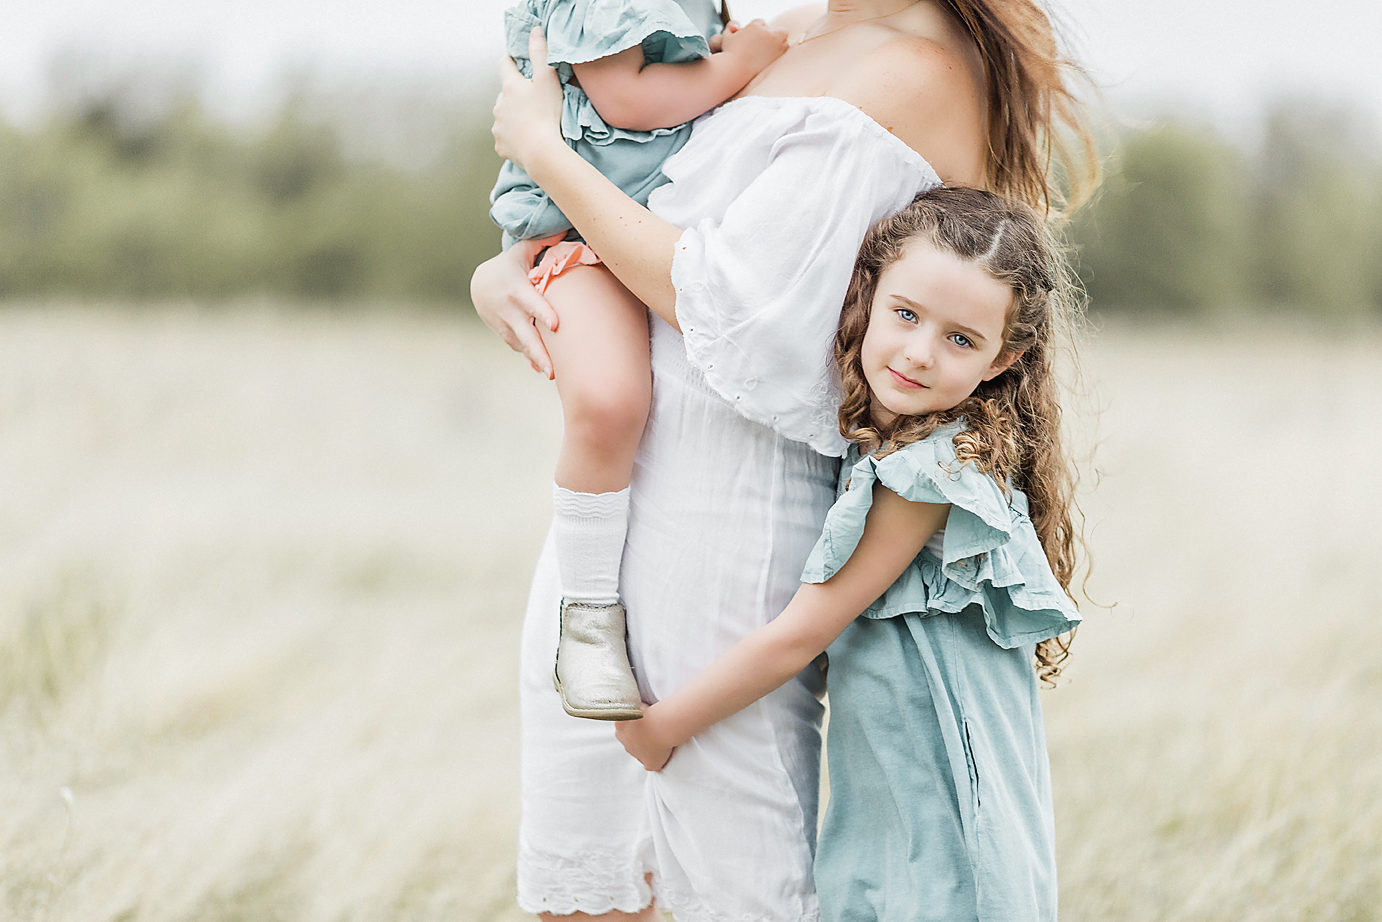 Dallas Family Photographer Flower Mound Portraits Meadows Kate Marie Portraiture 25.png